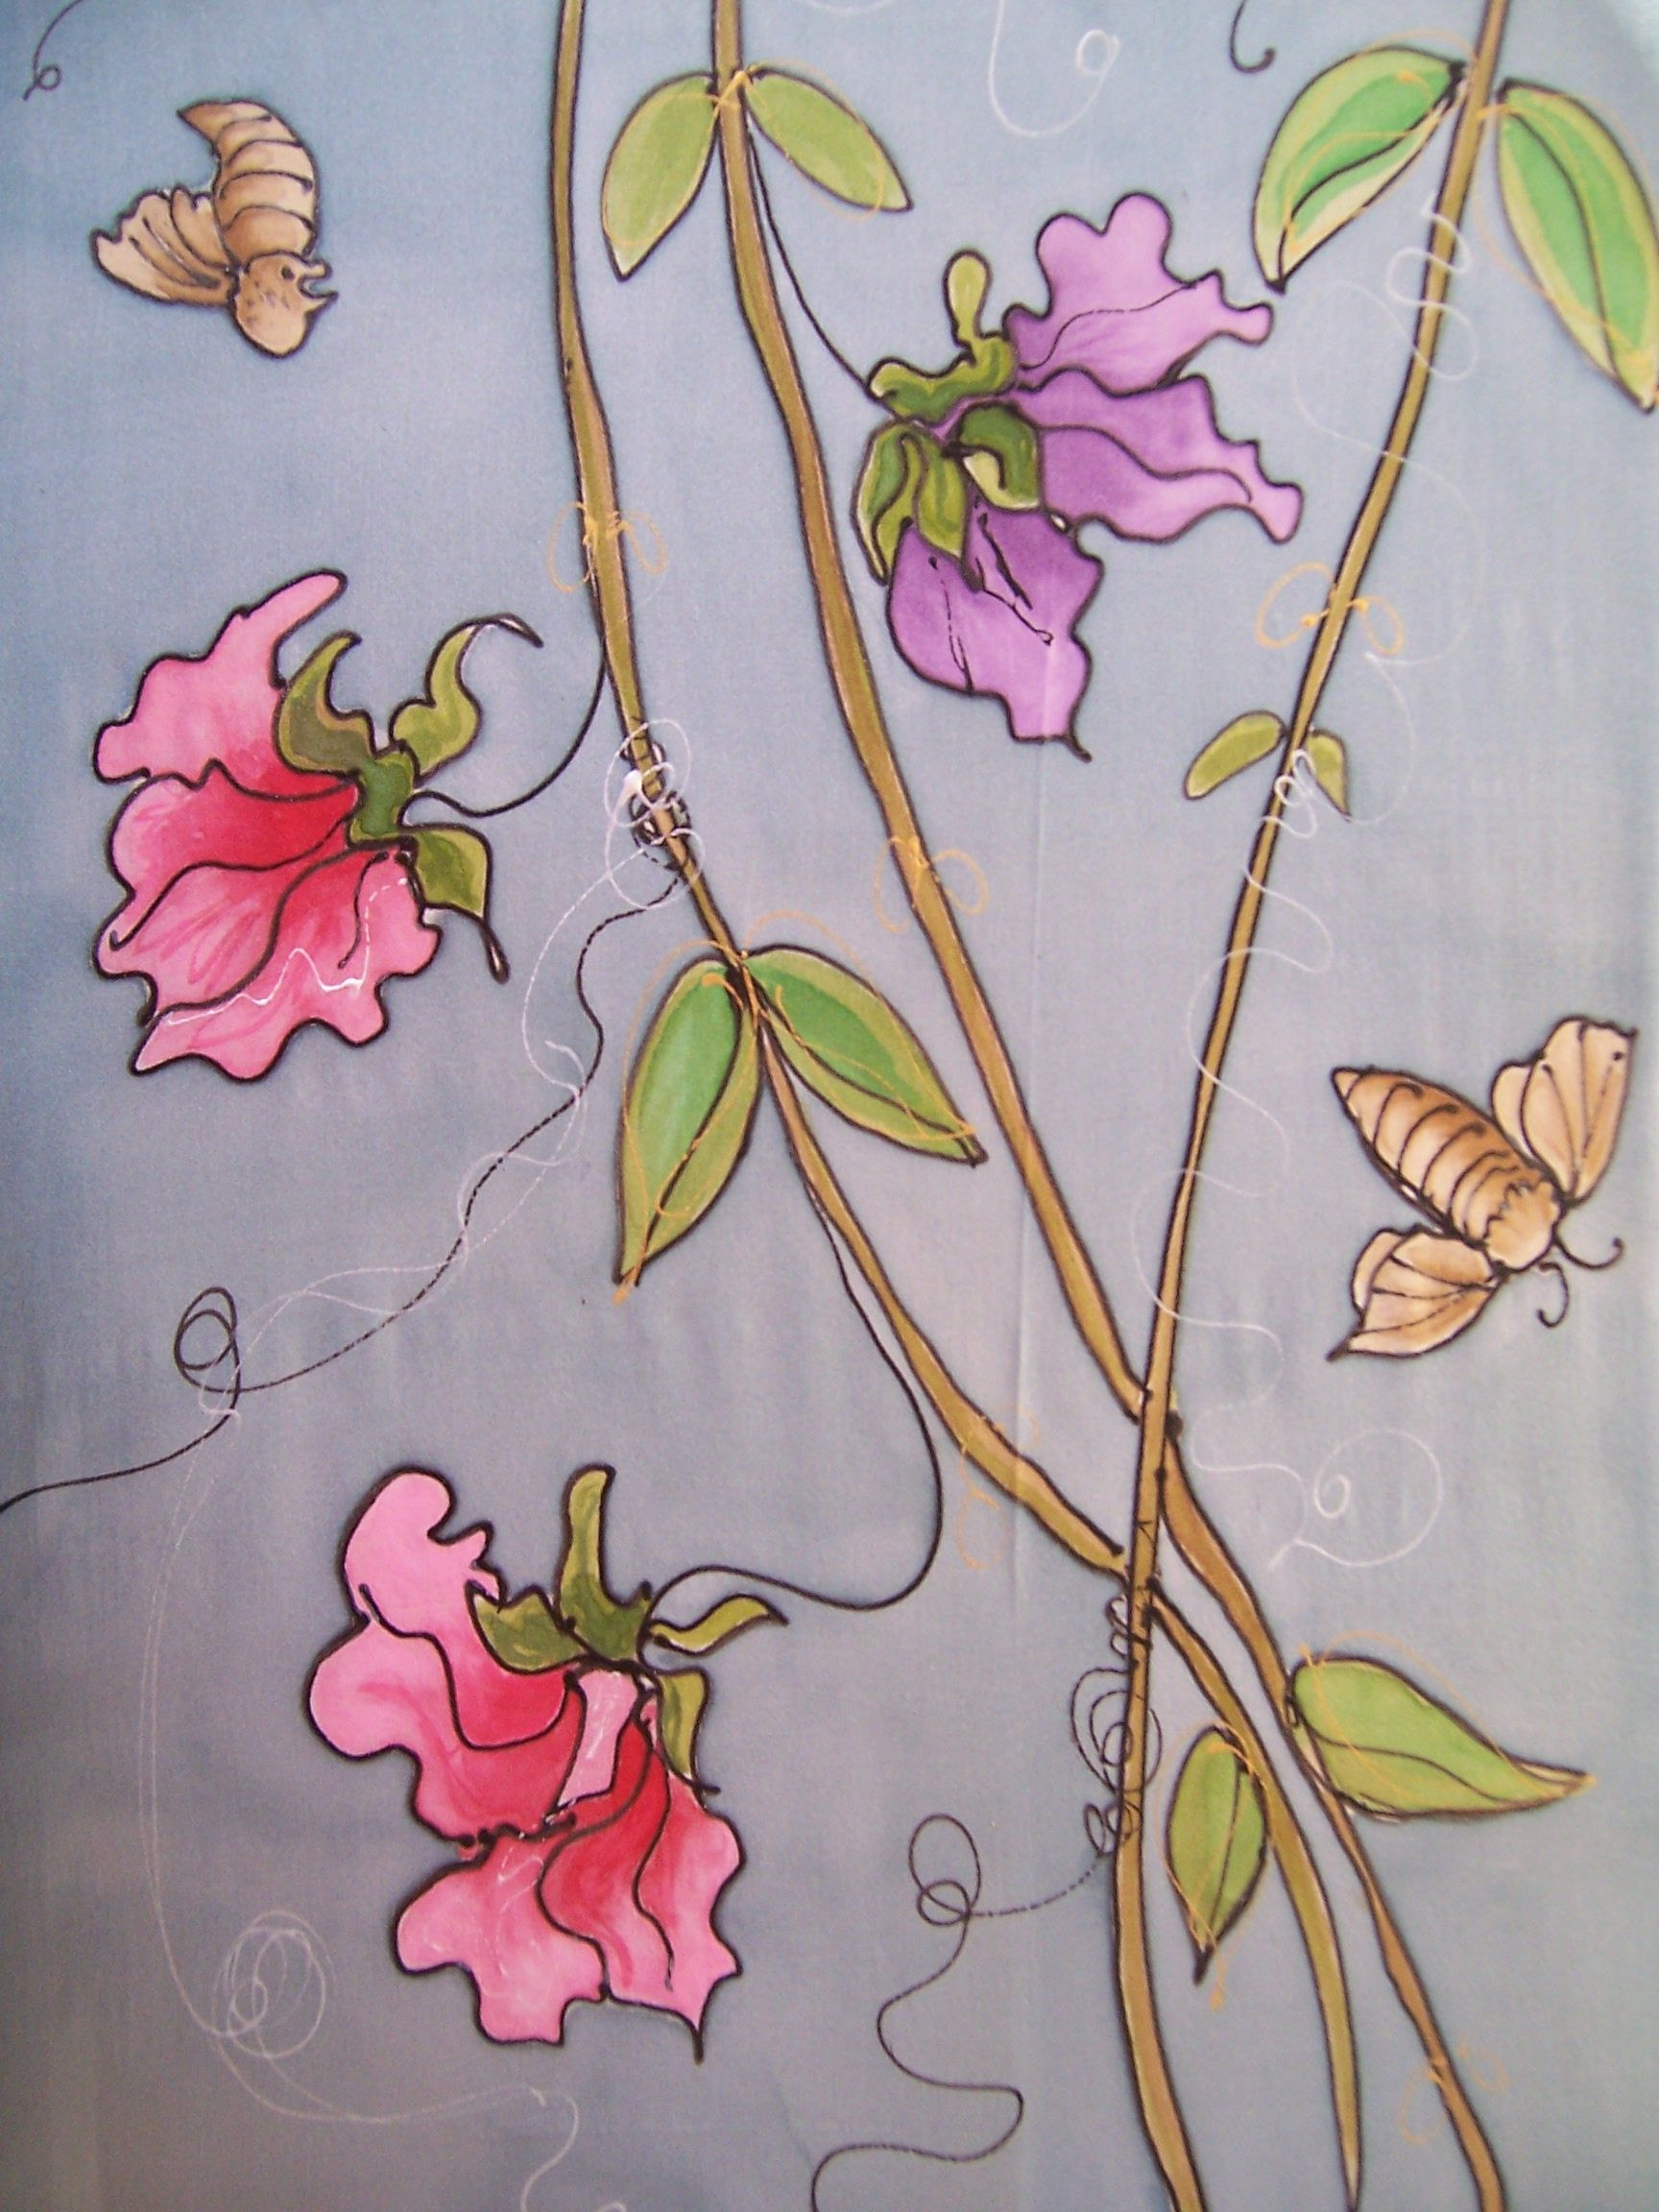 'Sweetpea' hand painted silk scarf by me.